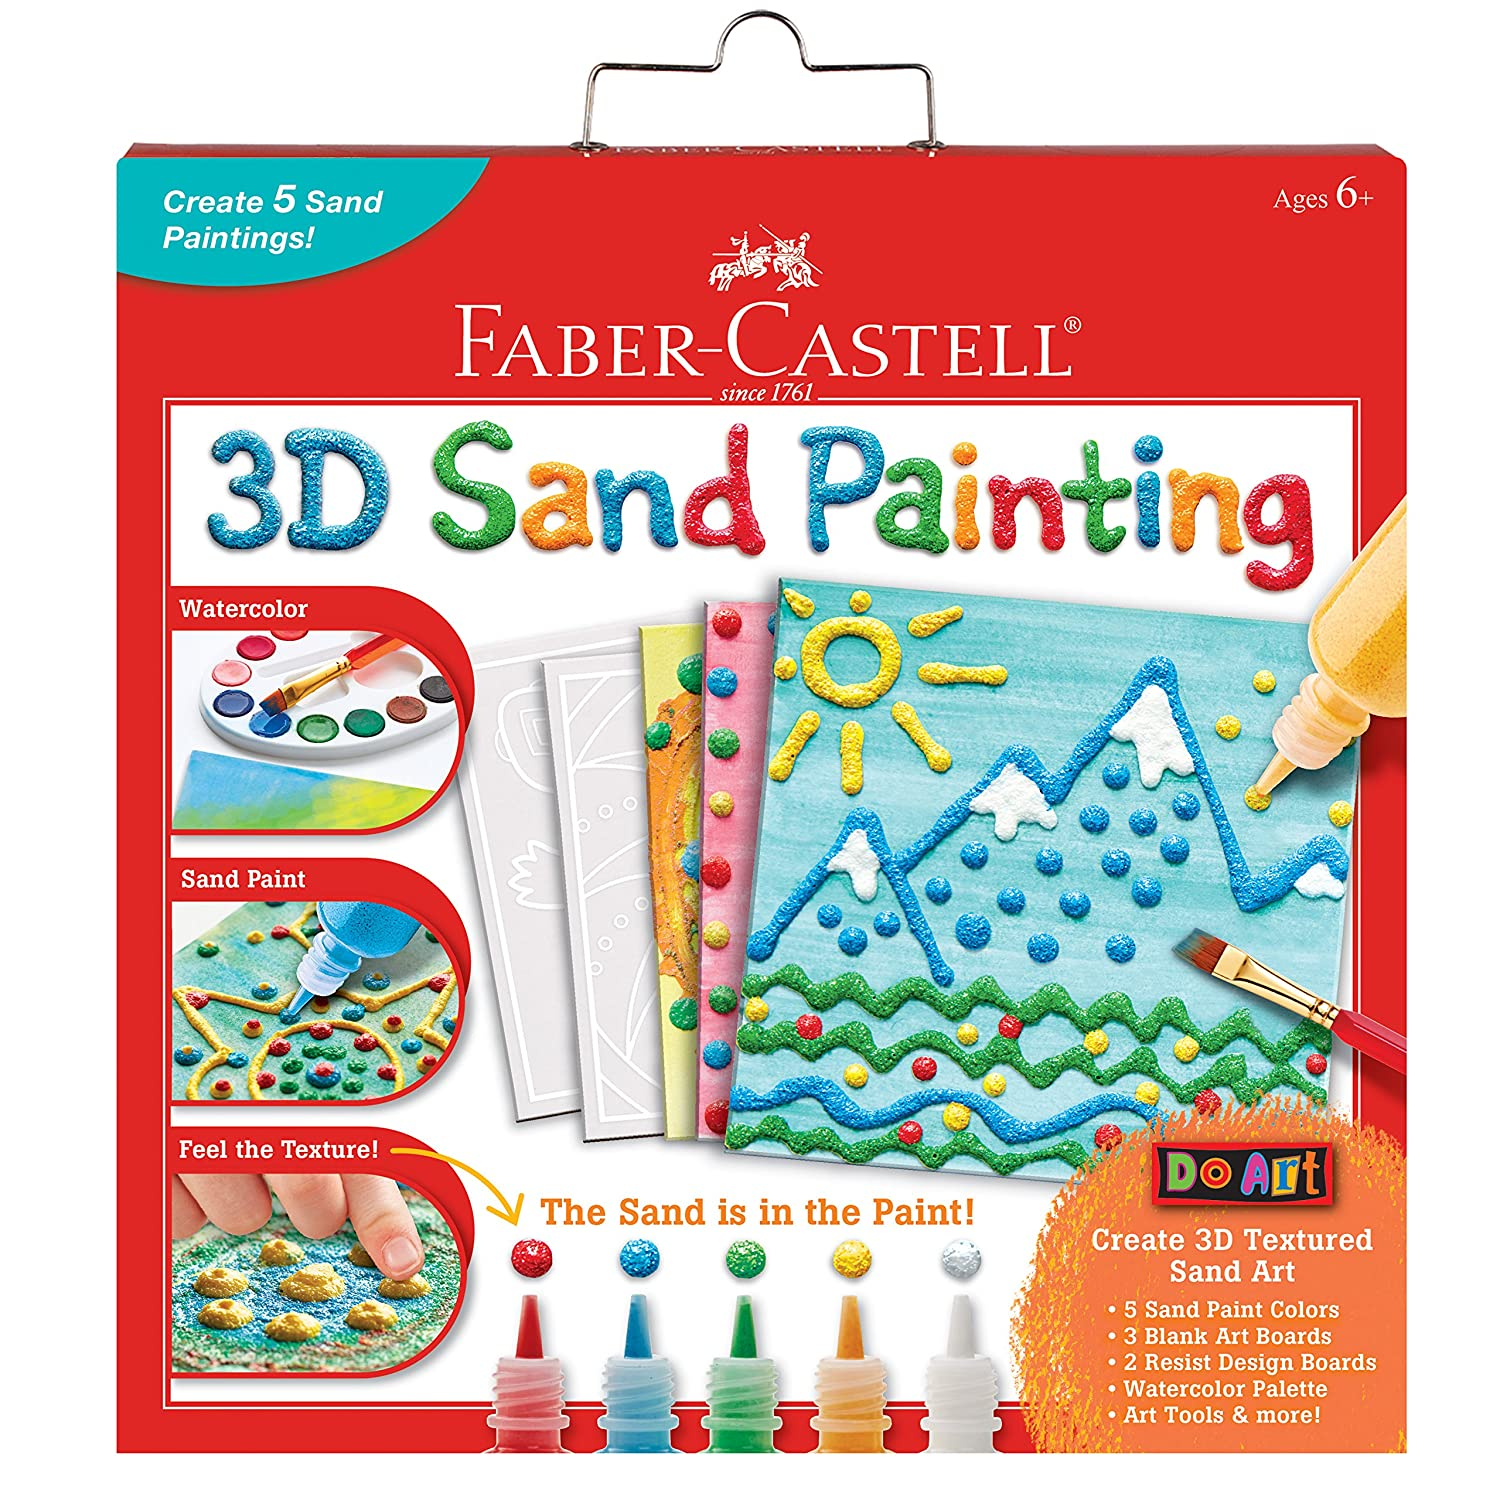 bcb174fbe37f8 Faber Castell 3D Sand Painting - Textured Sand Art Activity Kit for Kids